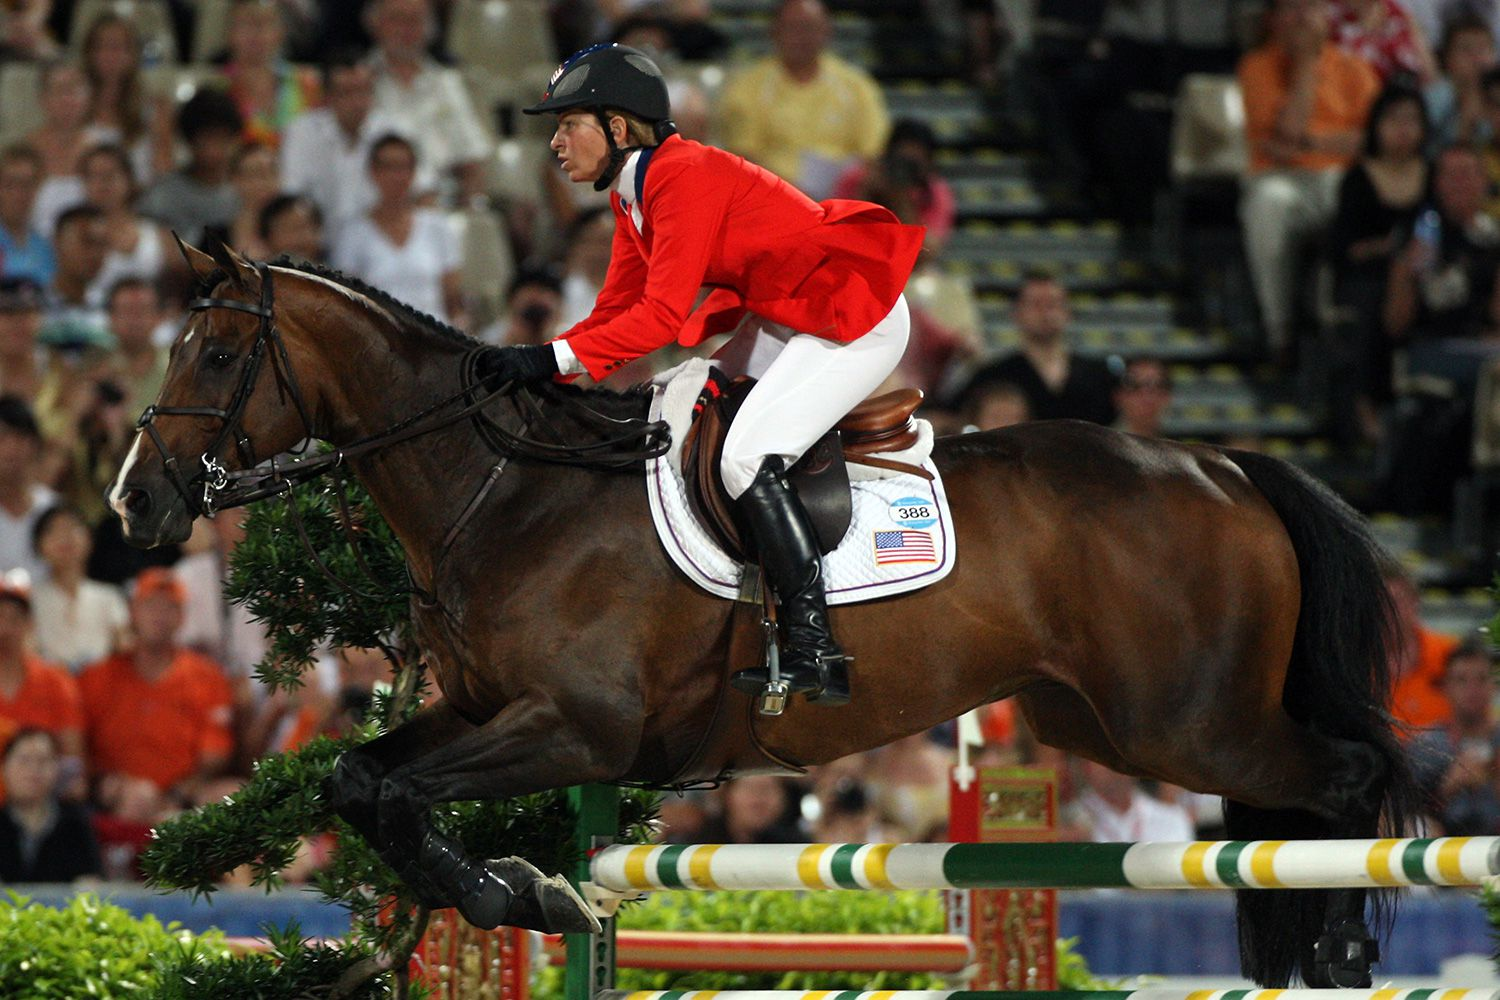 Top Us Equestrian Contenders At The Beijing Olympics